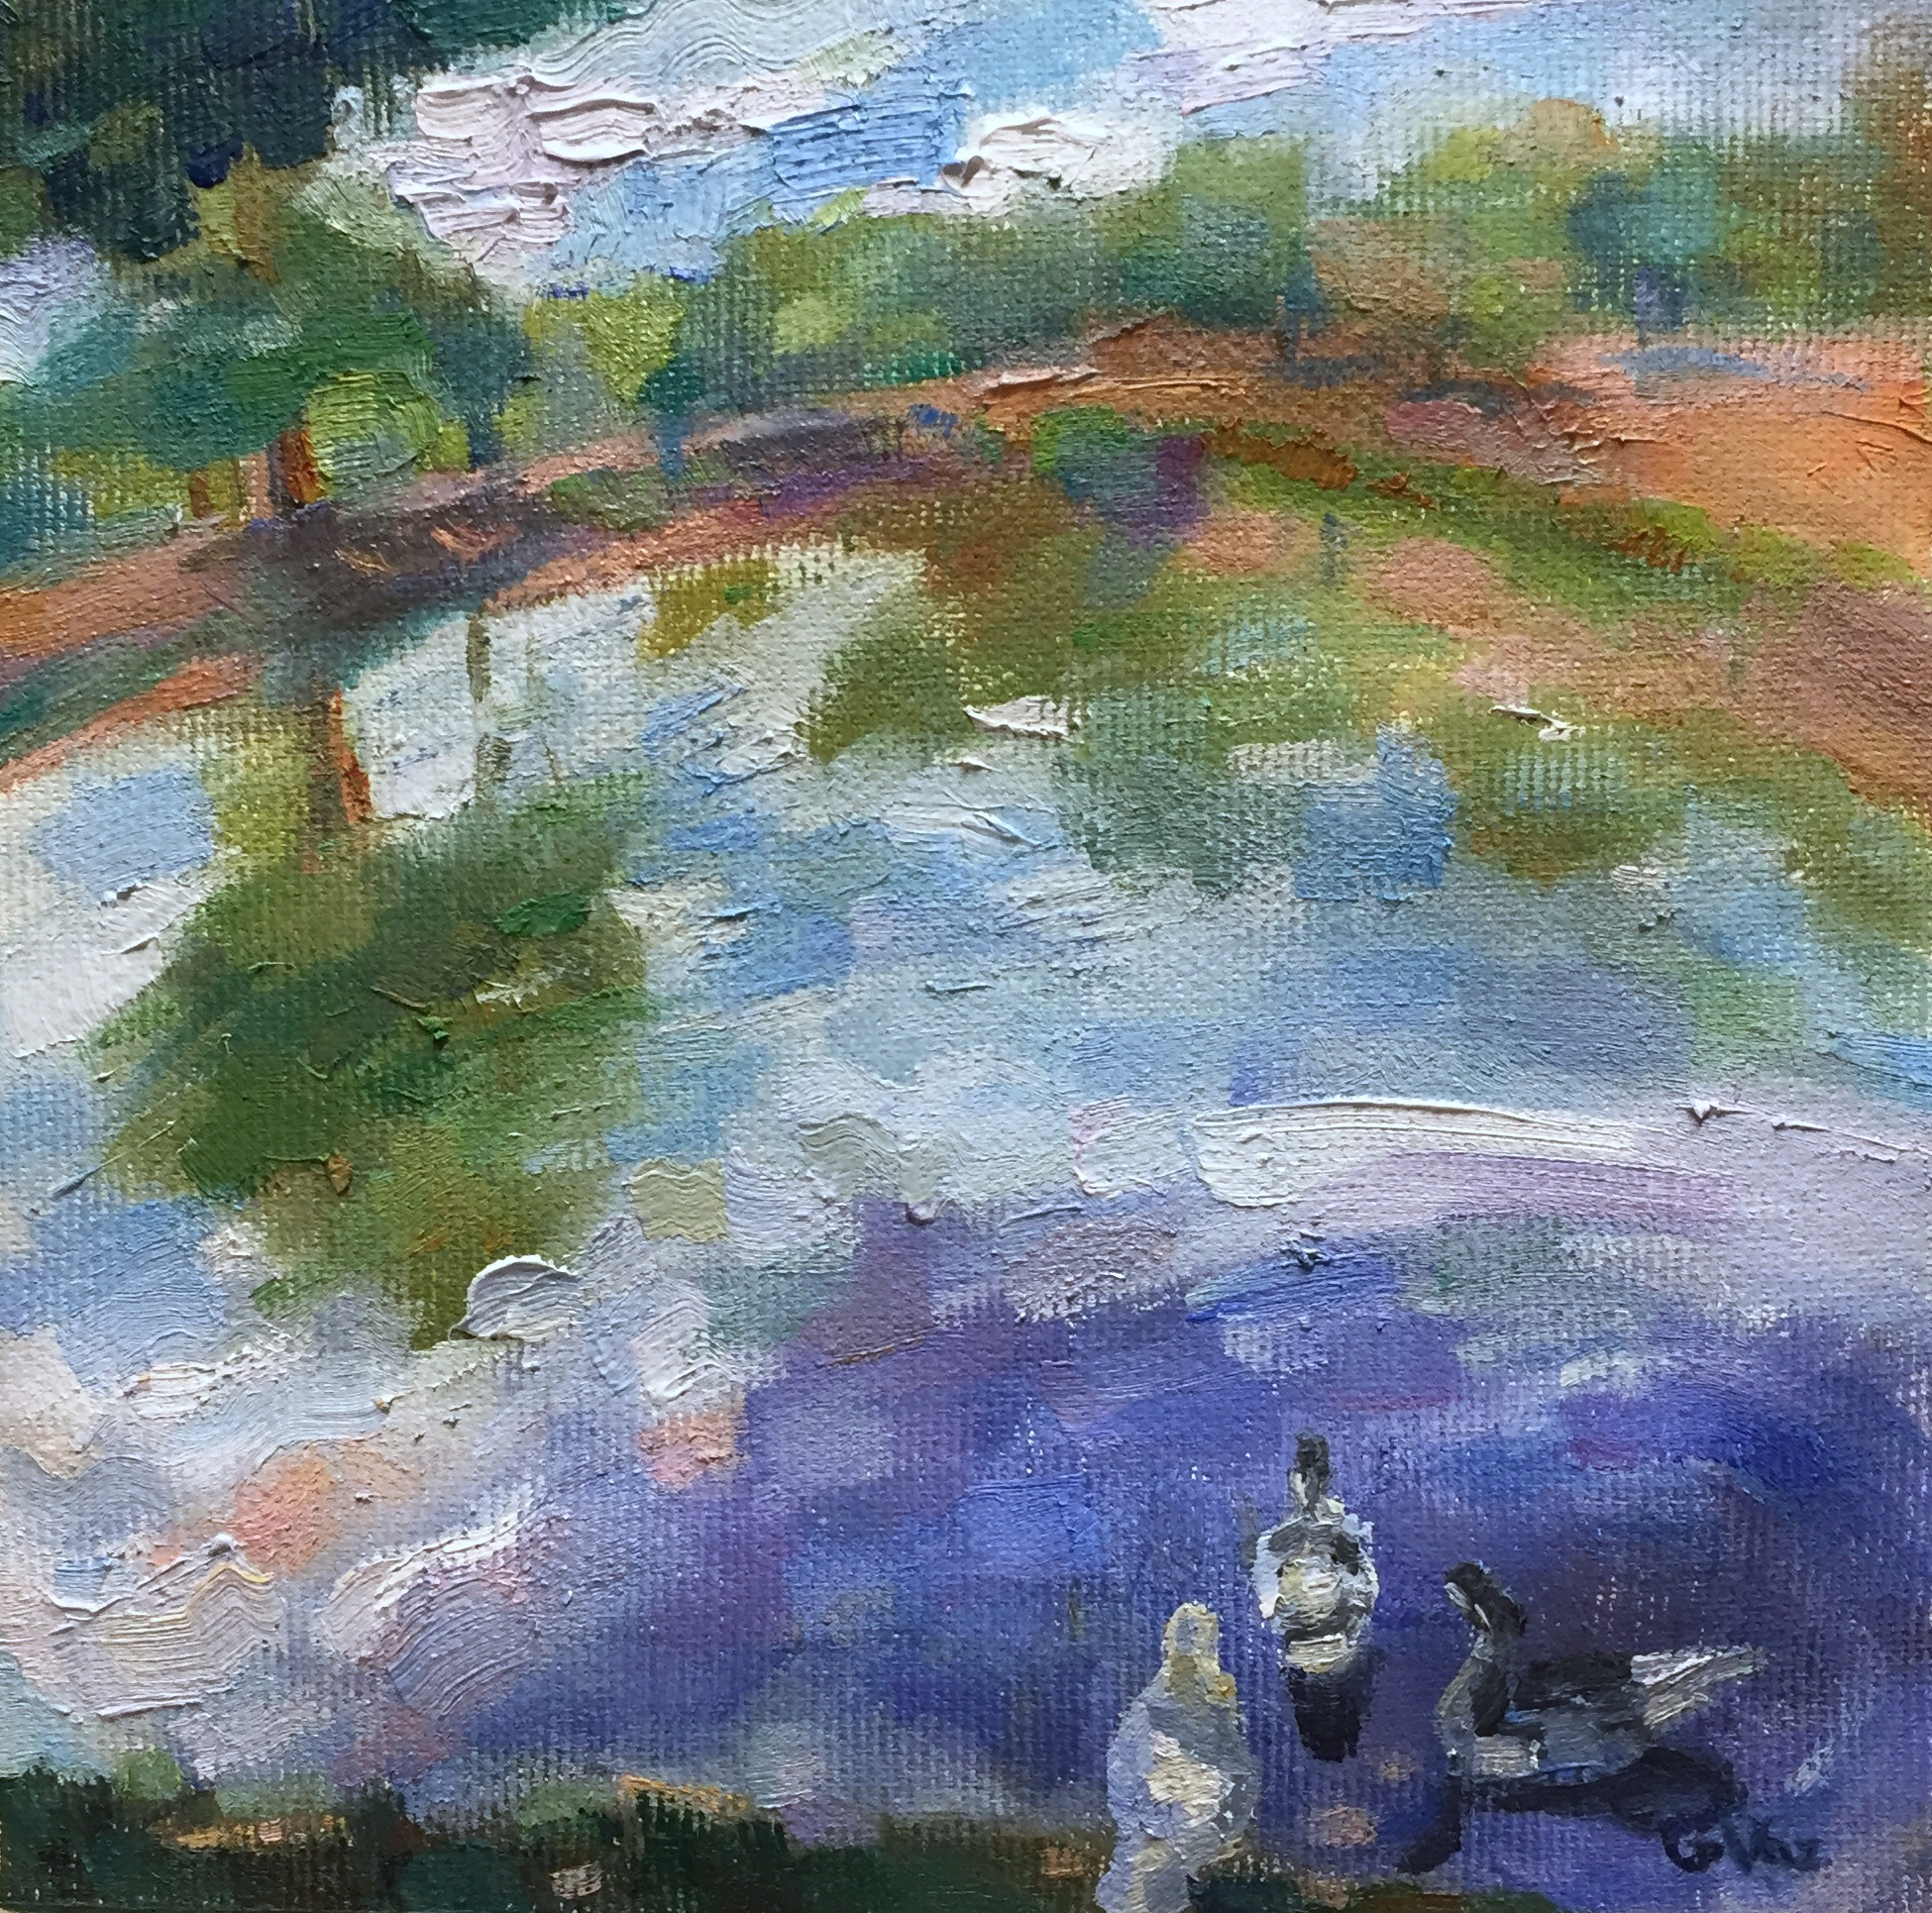 Sombra na lagoa, oil on canvas, 15 x 15 cm, 2018